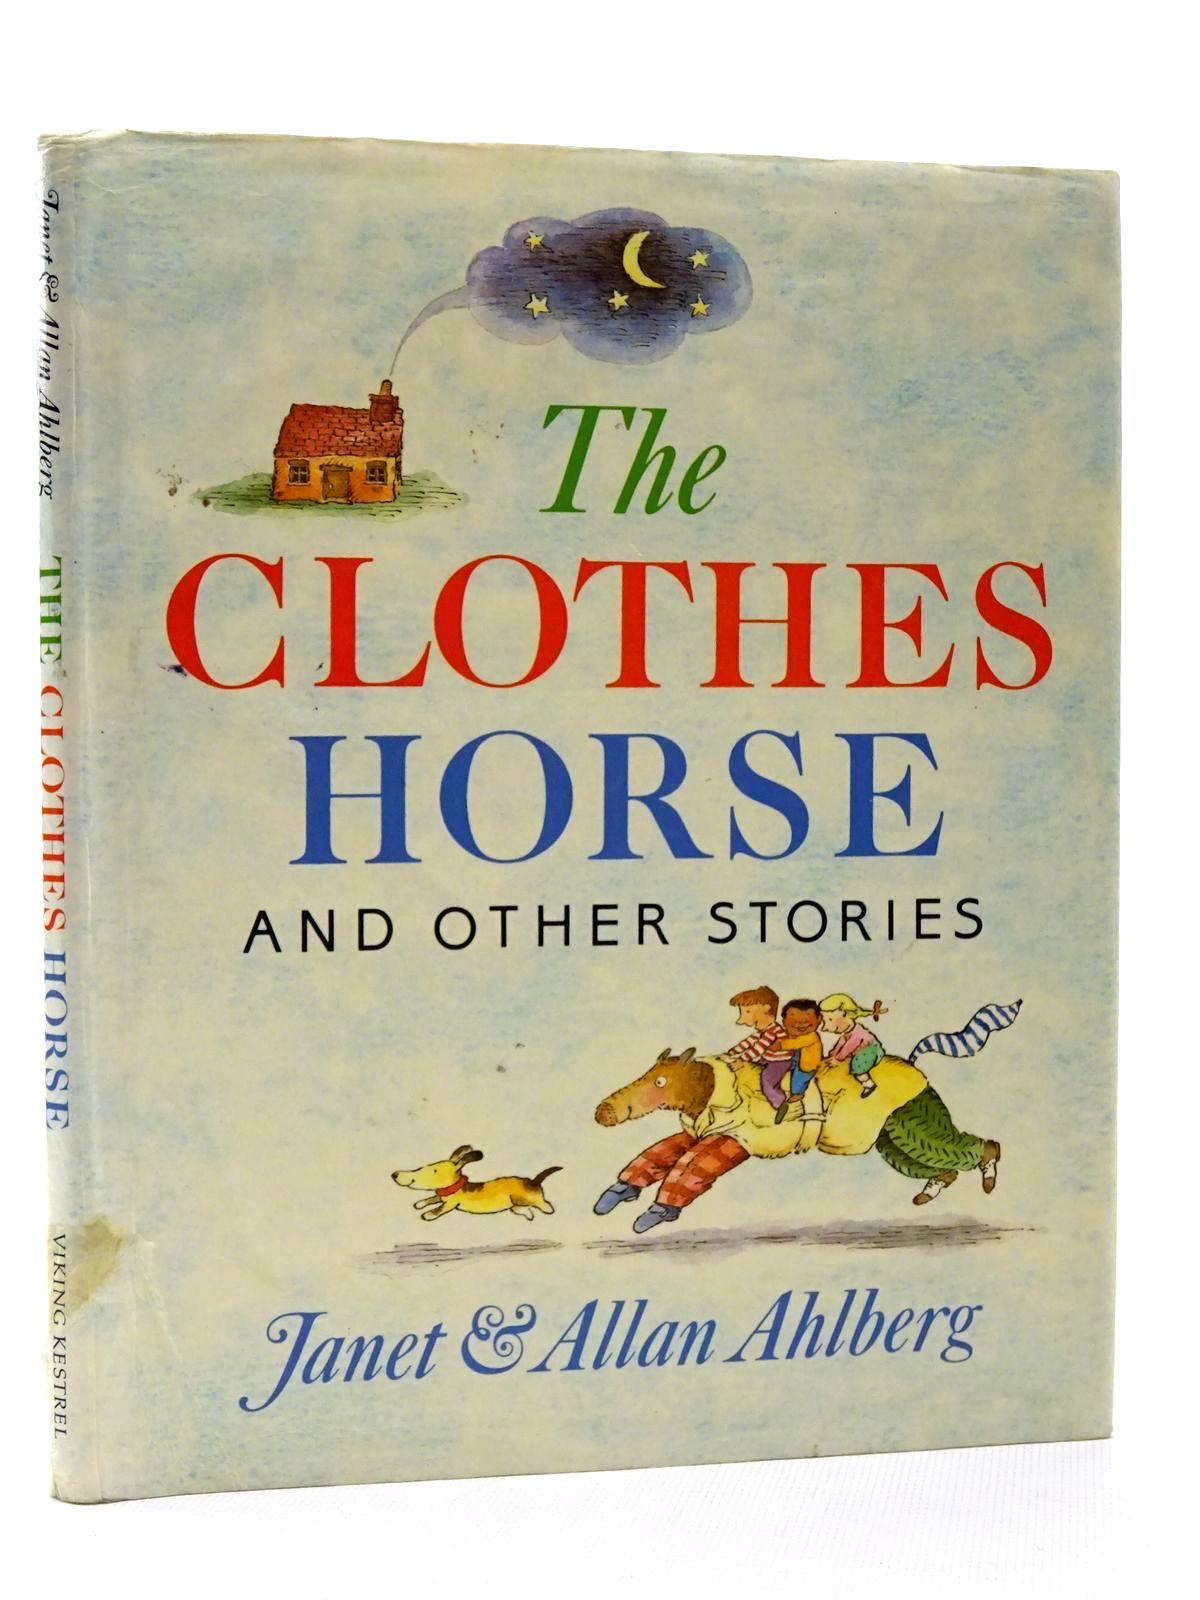 Photo of THE CLOTHES HORSE AND OTHER STORIES written by Ahlberg, Allan illustrated by Ahlberg, Janet published by Viking Kestrel (STOCK CODE: 2124375)  for sale by Stella & Rose's Books